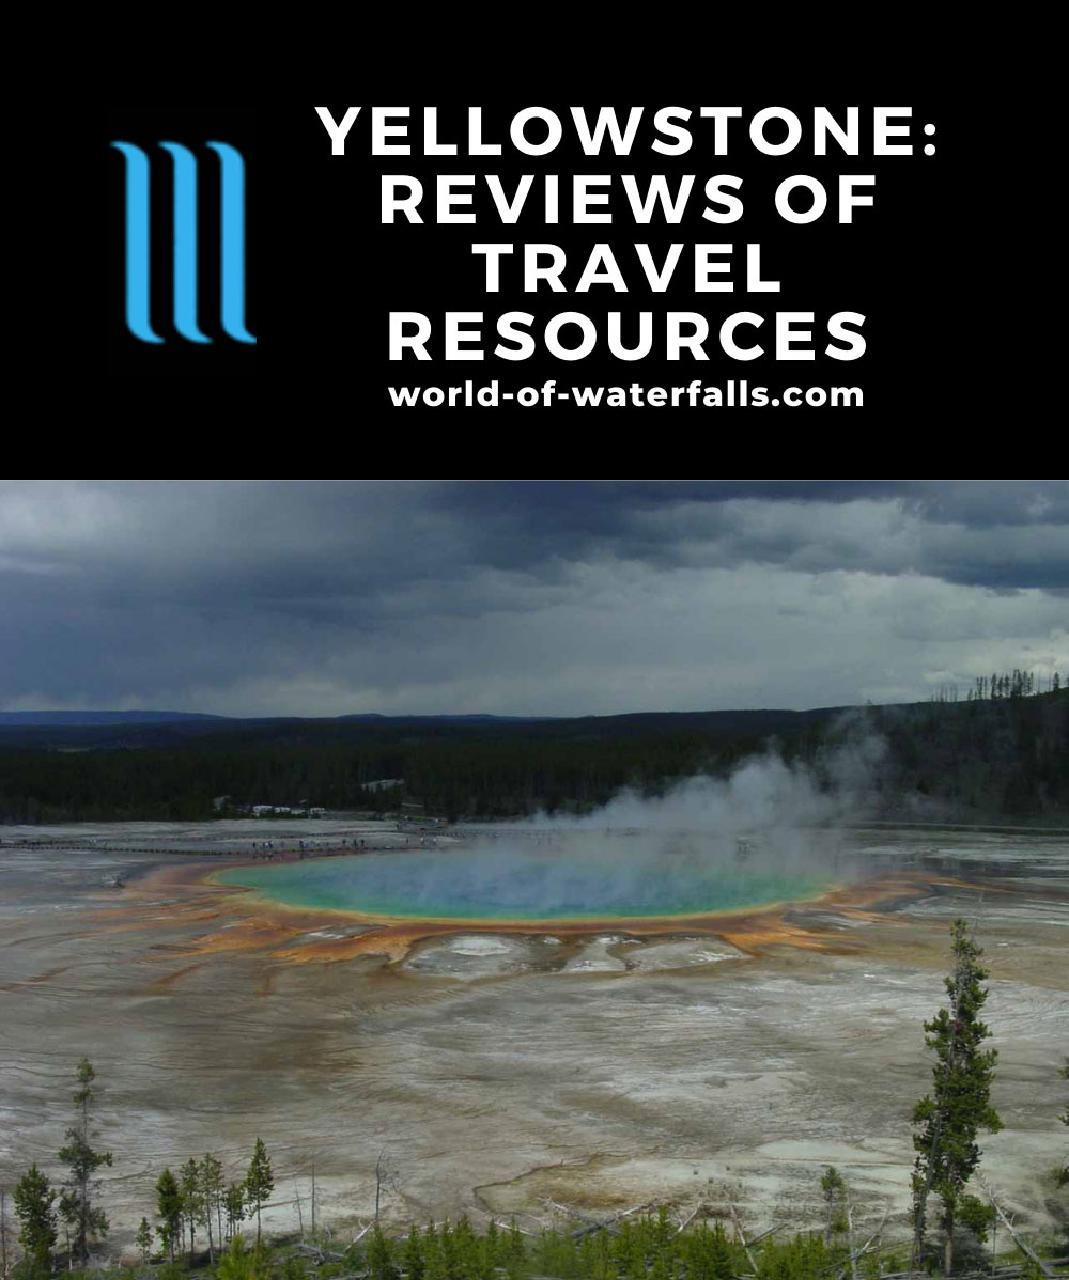 Yellowstone: Reviews of Travel Resources